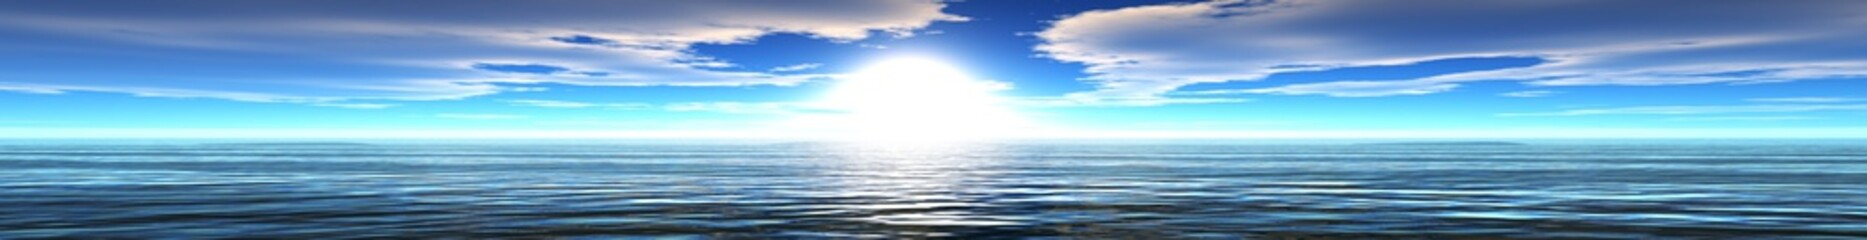 panoramic sunset sea landscape, ocean sunrise, the light in the sky over the sea, the sun over the water,